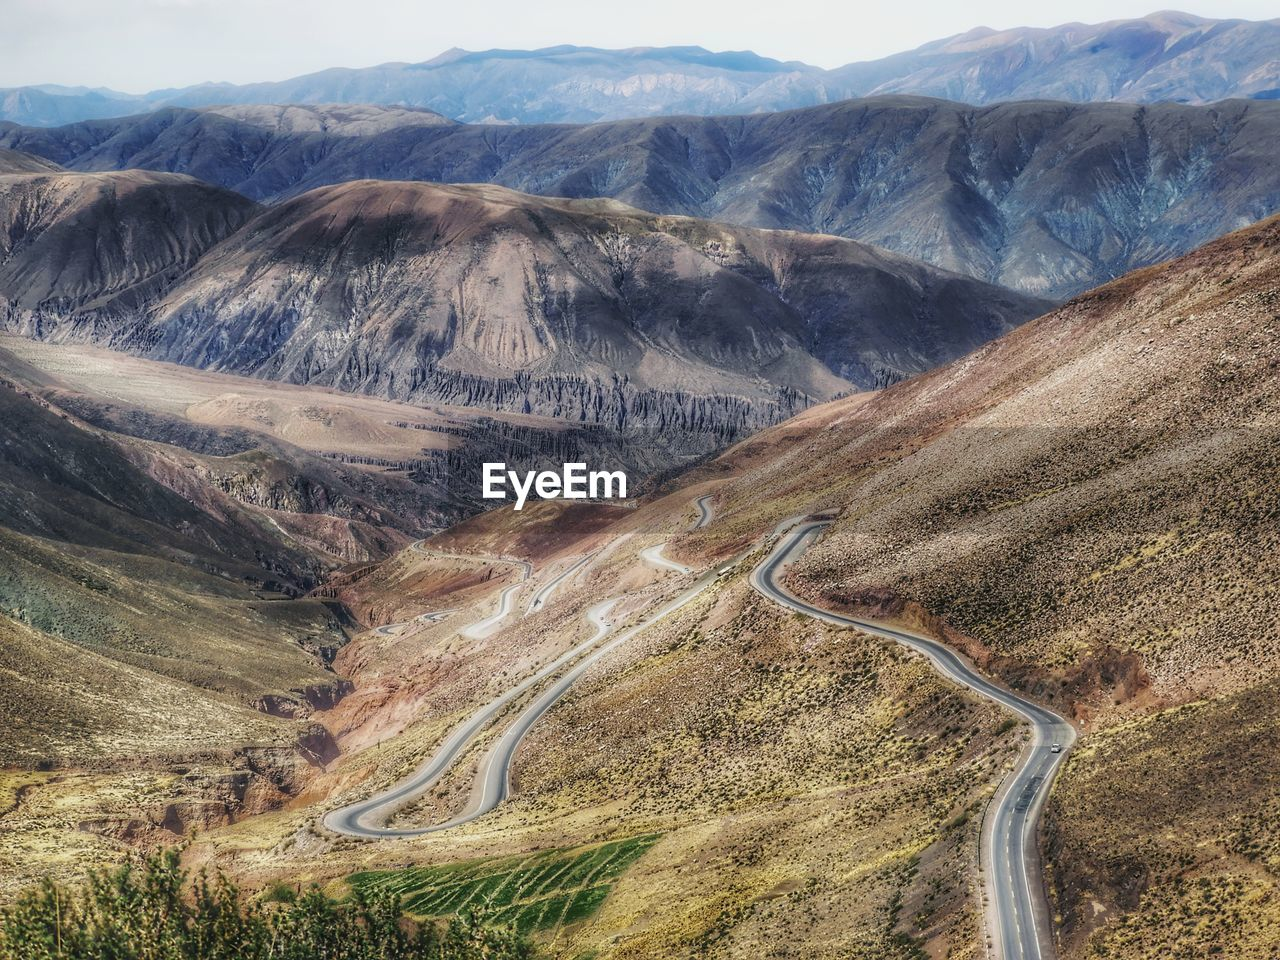 mountain, landscape, scenics - nature, environment, mountain range, non-urban scene, beauty in nature, road, no people, tranquility, tranquil scene, nature, day, remote, winding road, geology, transportation, mountain road, physical geography, idyllic, arid climate, outdoors, climate, formation